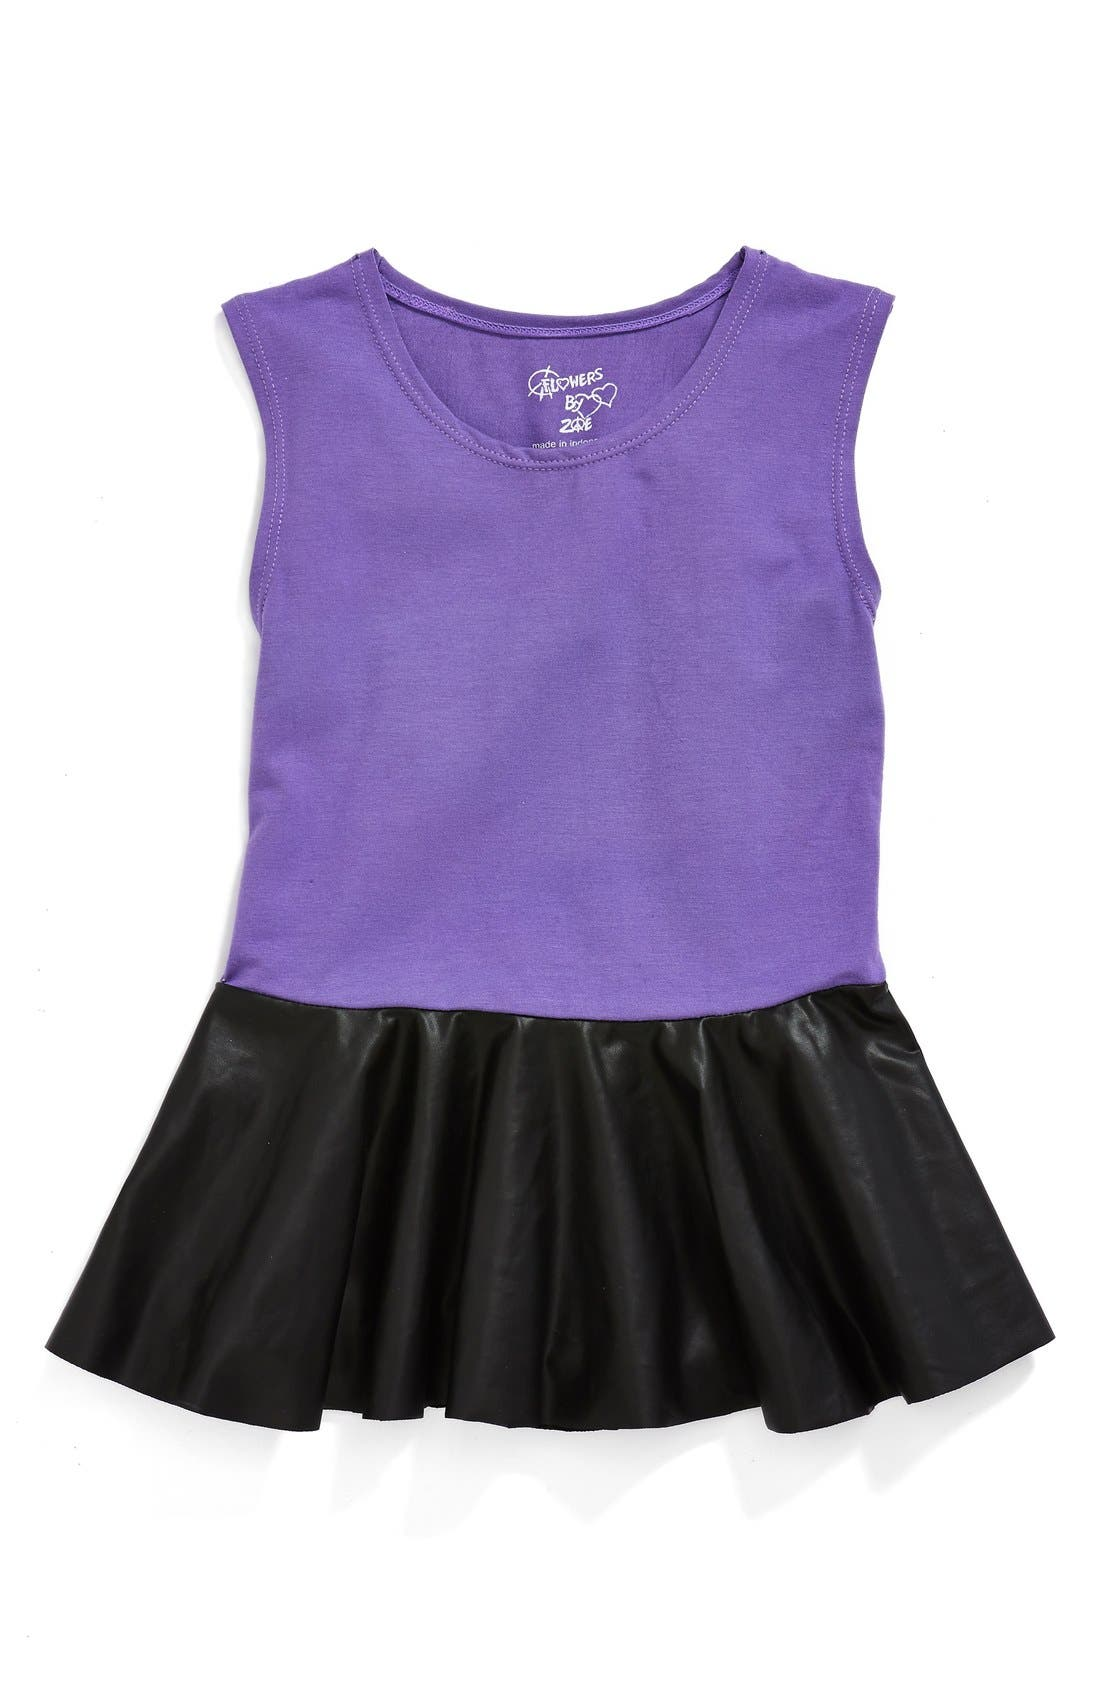 Alternate Image 1 Selected - Flowers by Zoe Faux Leather Peplum Top (Big Girls) (Online Only)